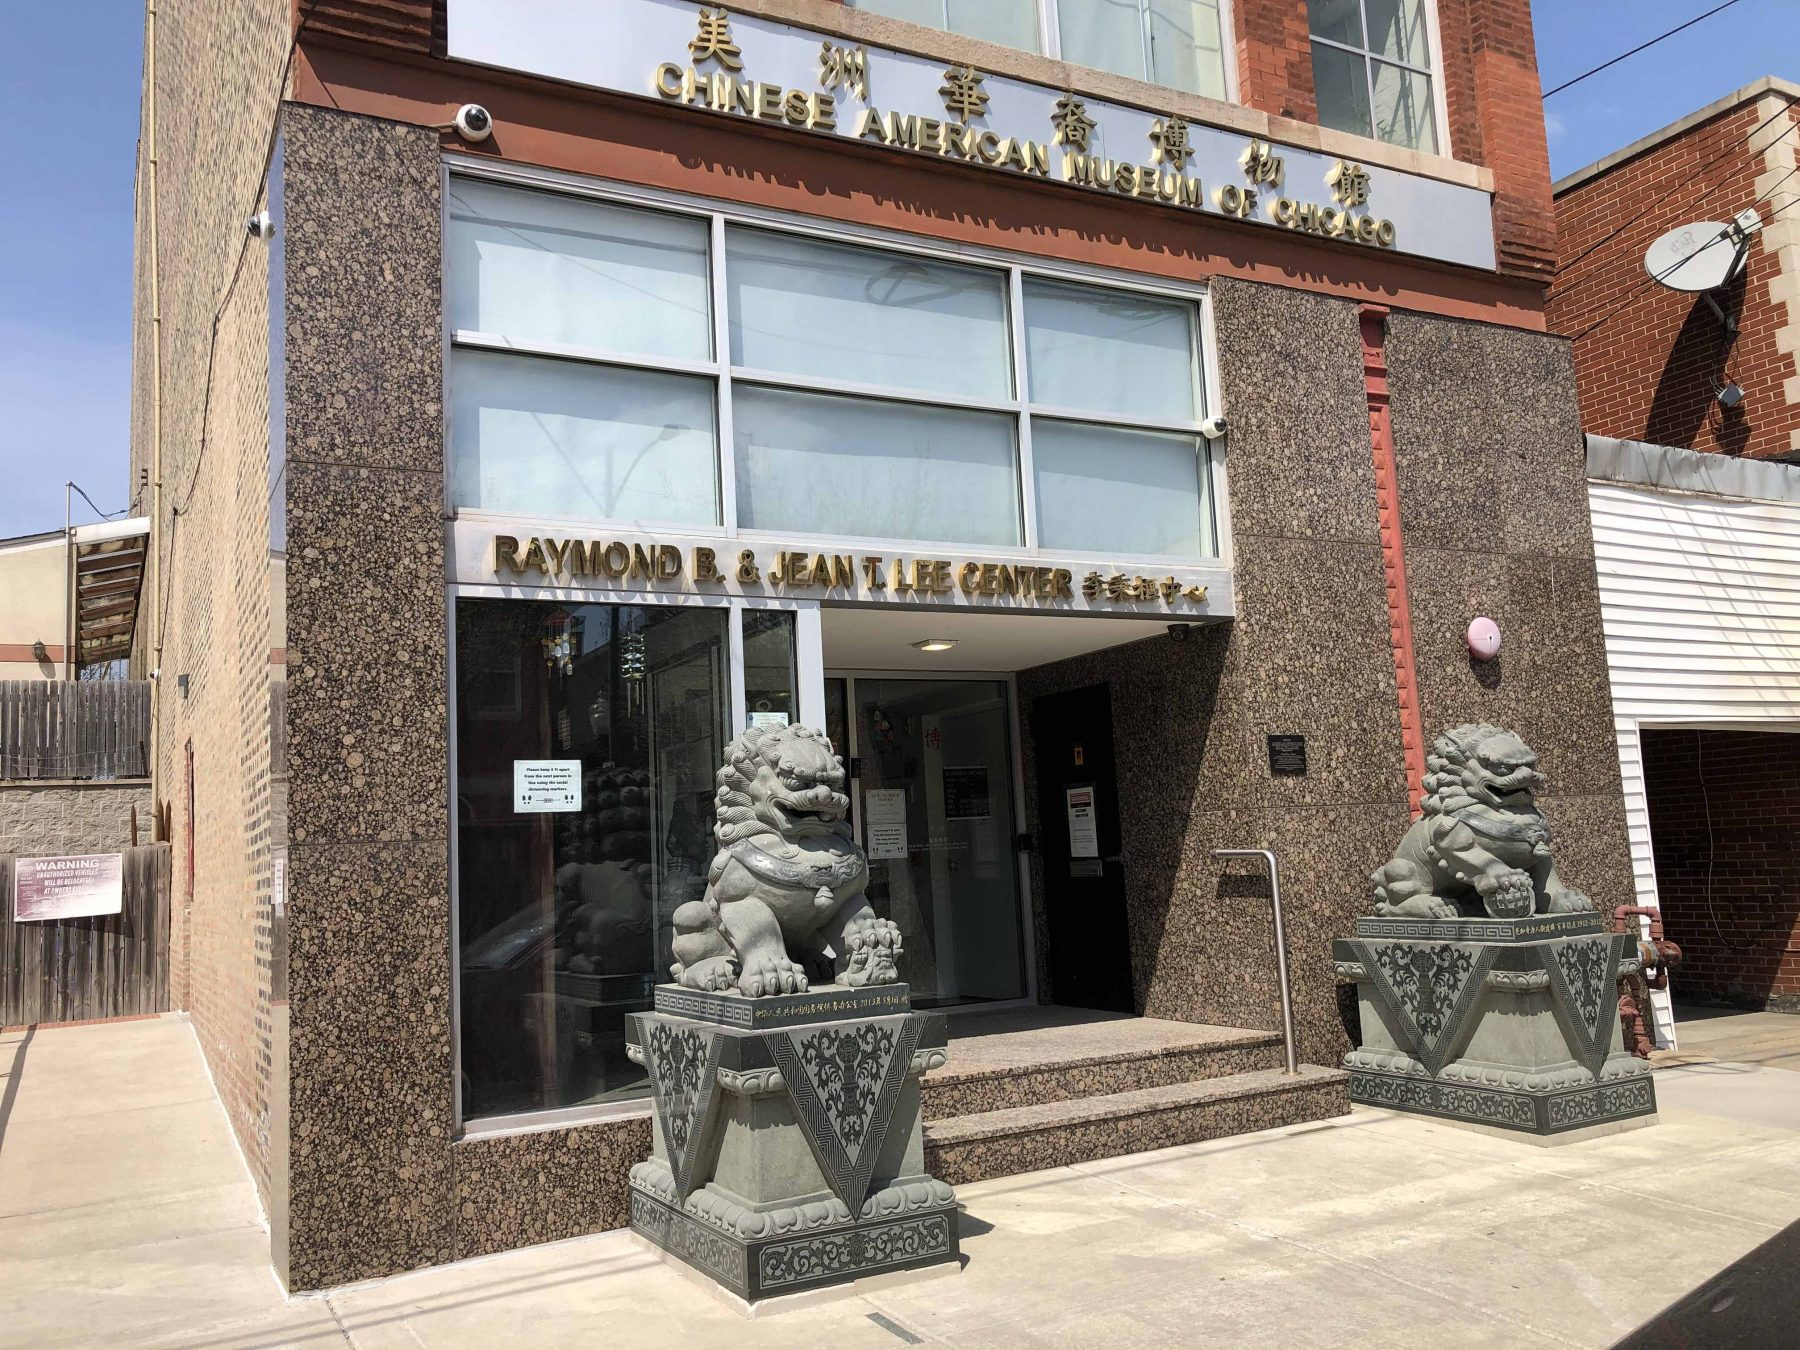 Chinese American Museum of Chicago